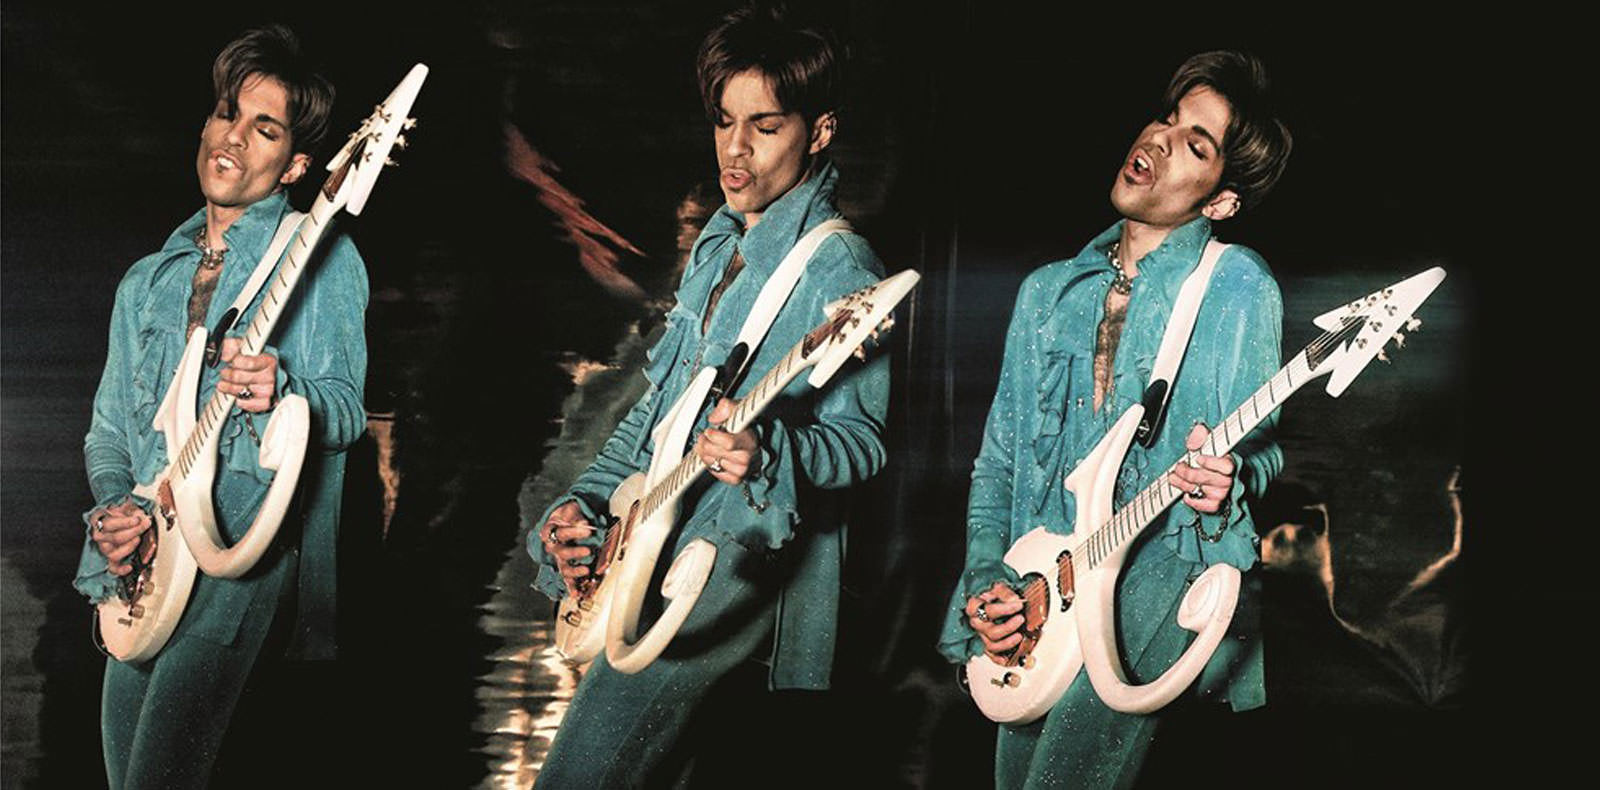 Prince: previously unseen pictures of the prince of pop